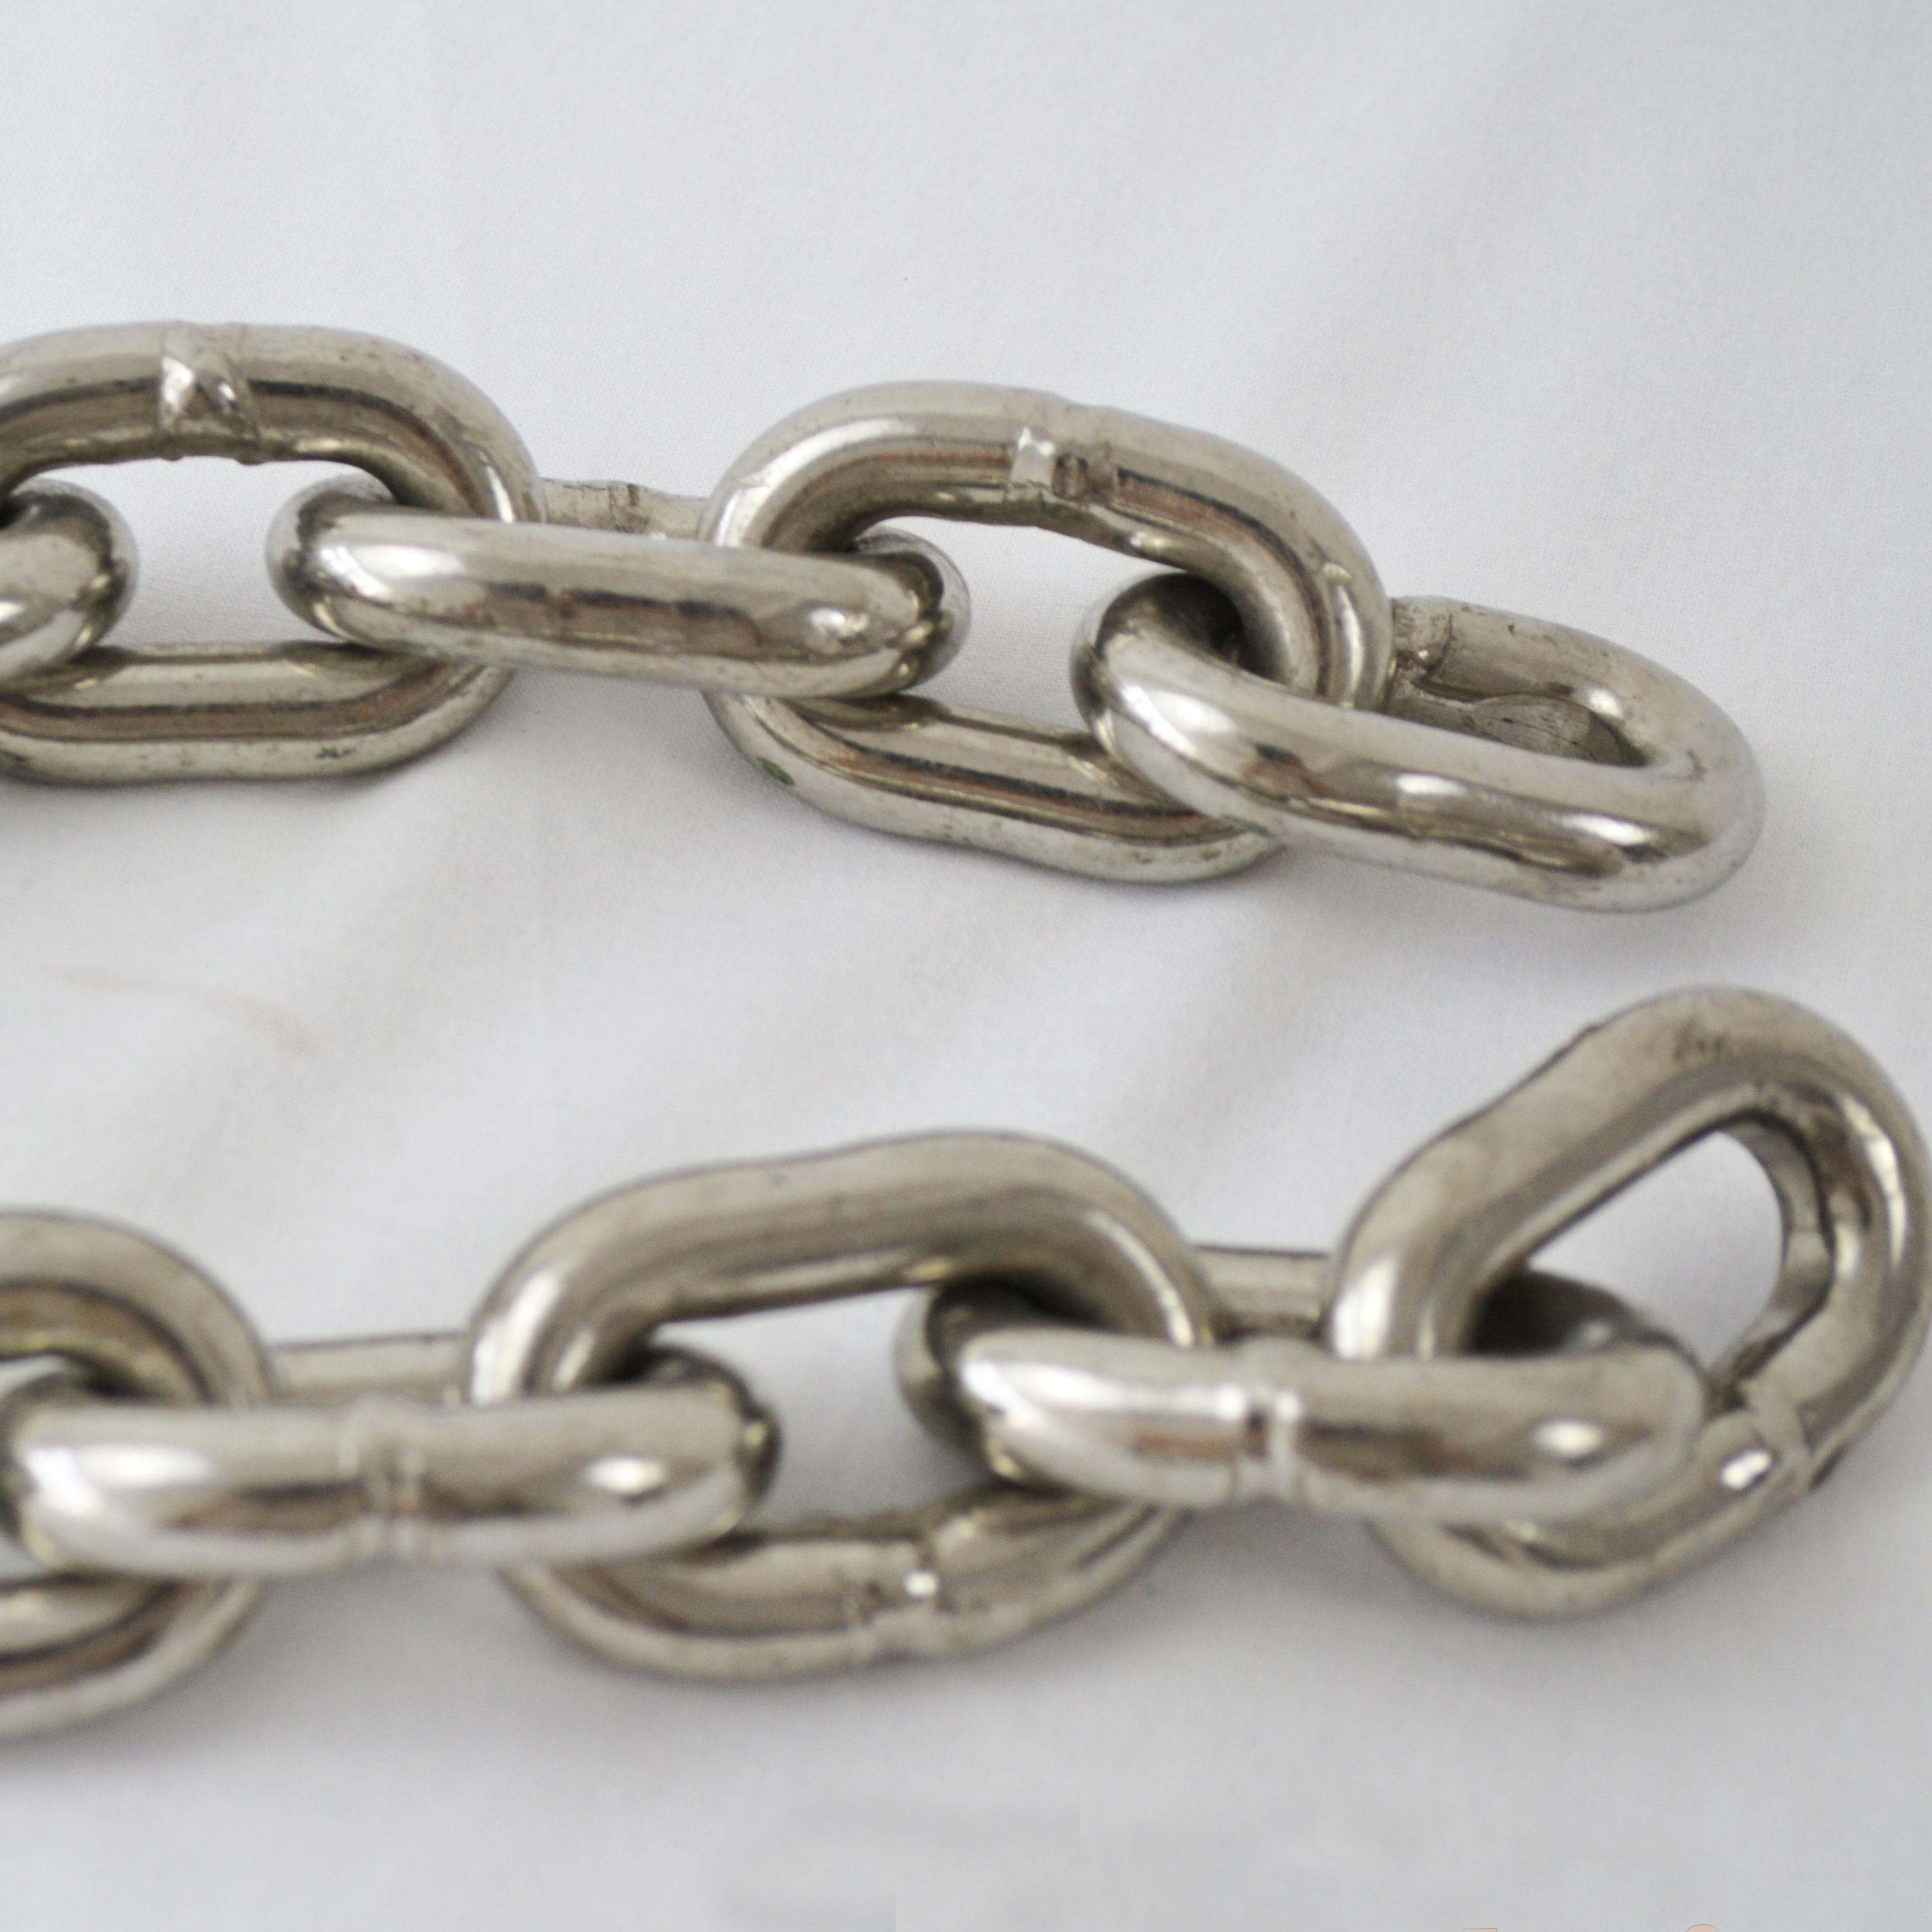 anchor chain/ short link chain/ Din 766 anchor chain